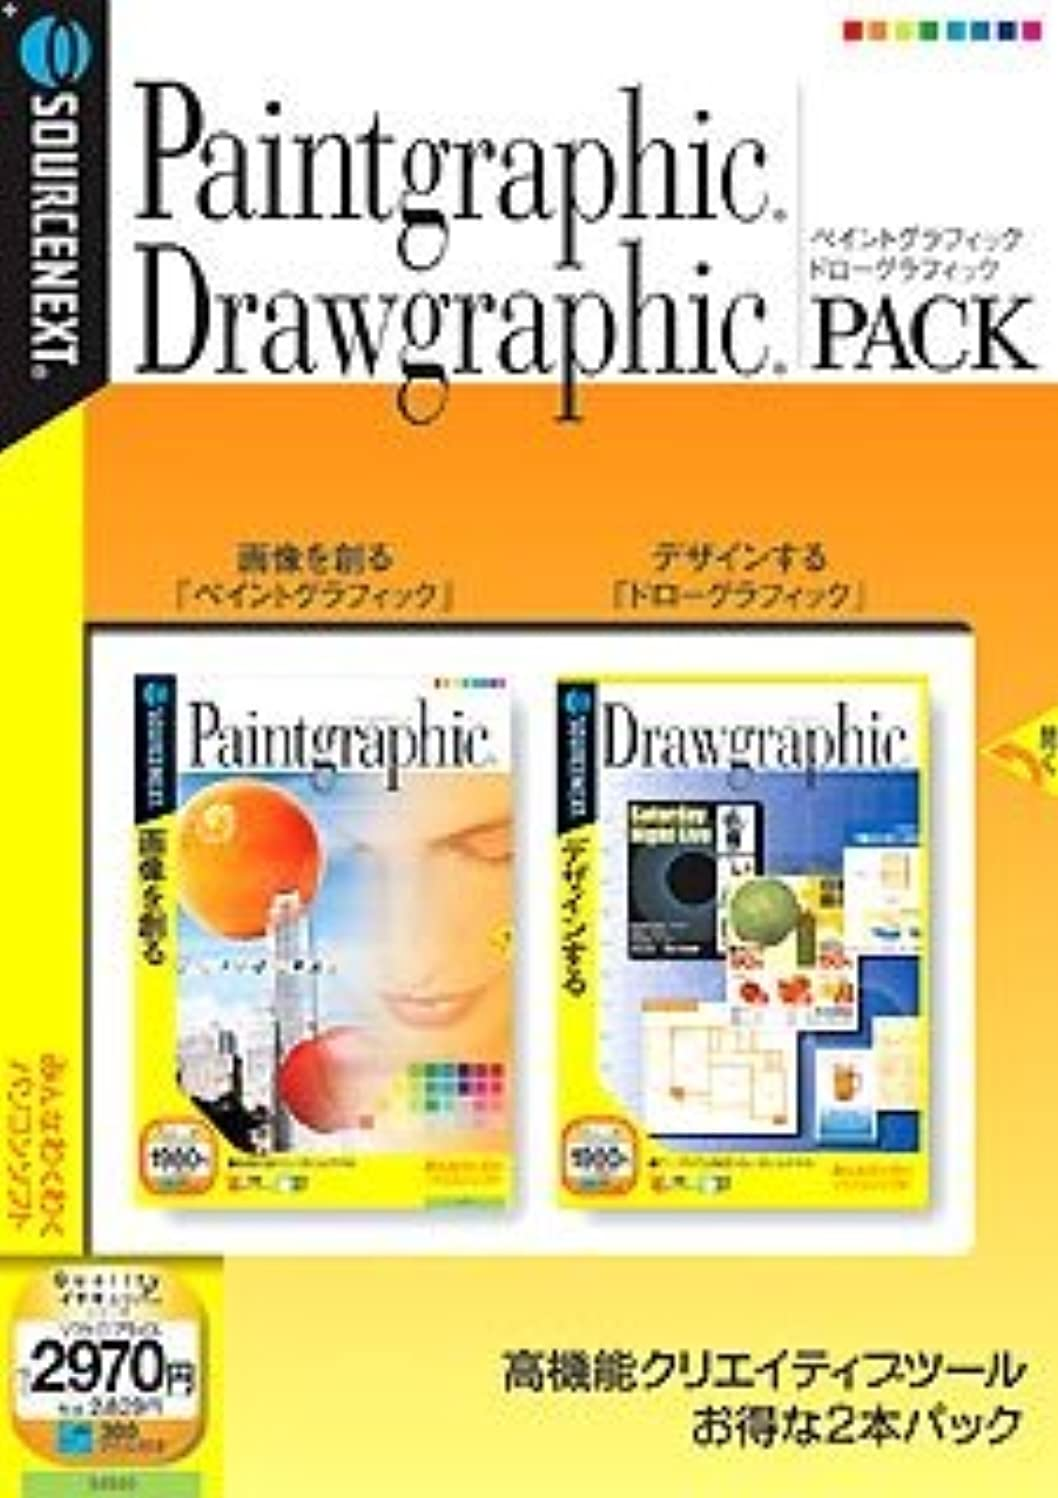 Paintgraphic + Drawgraphic Pack (説明扉付きスリムパッケージ版)